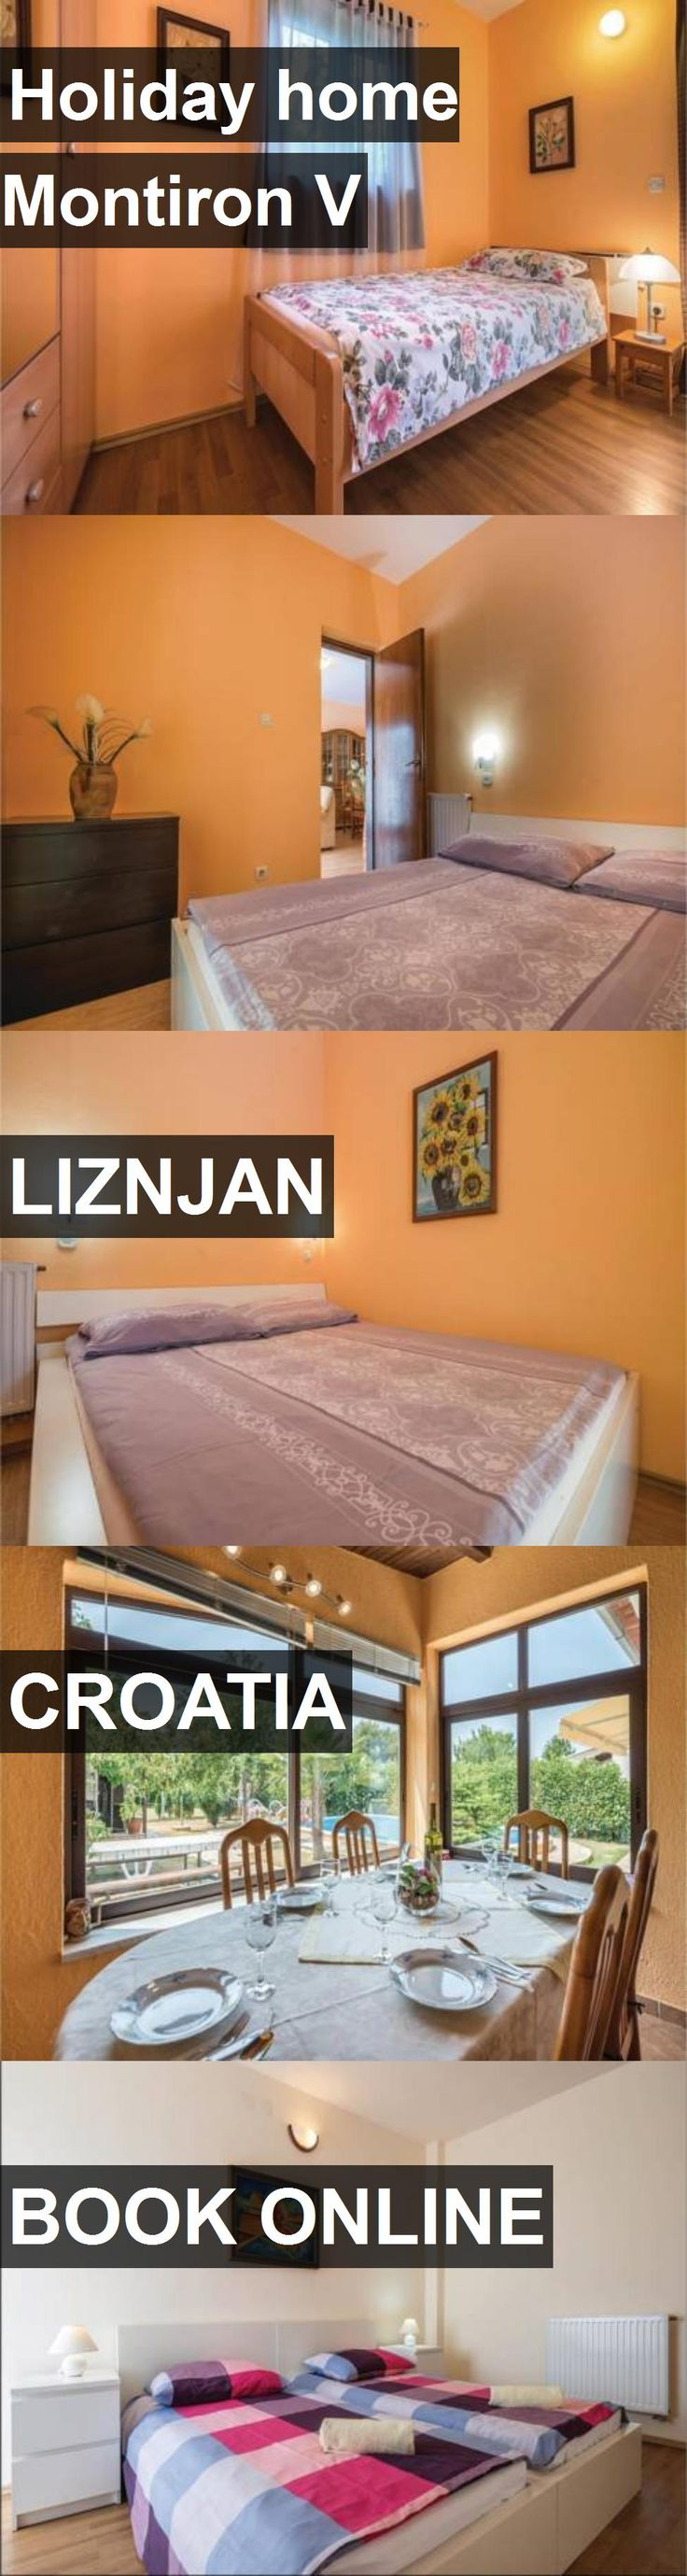 Hotel Holiday home Montiron V in Liznjan, Croatia. For more information, photos, reviews and best prices please follow the link. #Croatia #Liznjan #travel #vacation #hotel